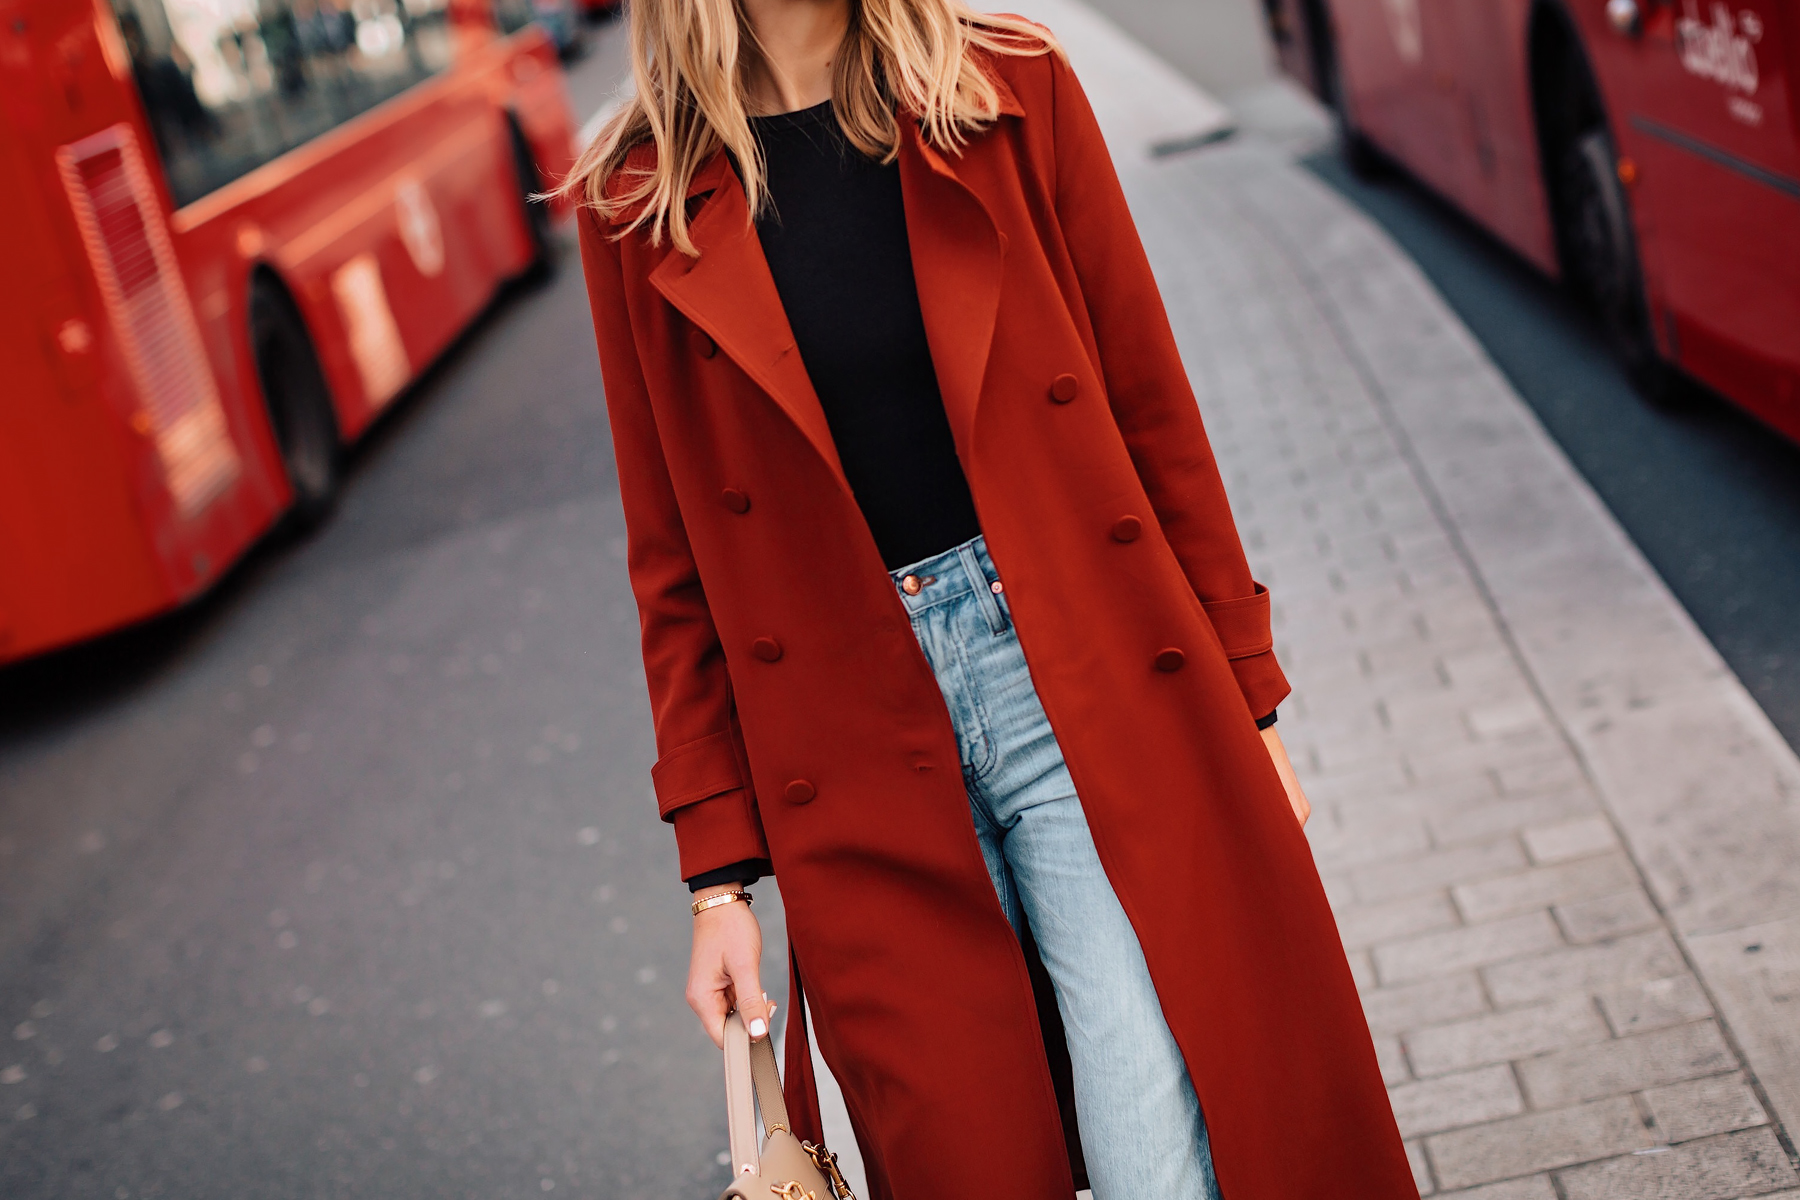 Blonde Woman Wearing Red Trench Coat Black Top Jeans Outfit Fashion Jackson San Diego Fashion Blogger London Street Style